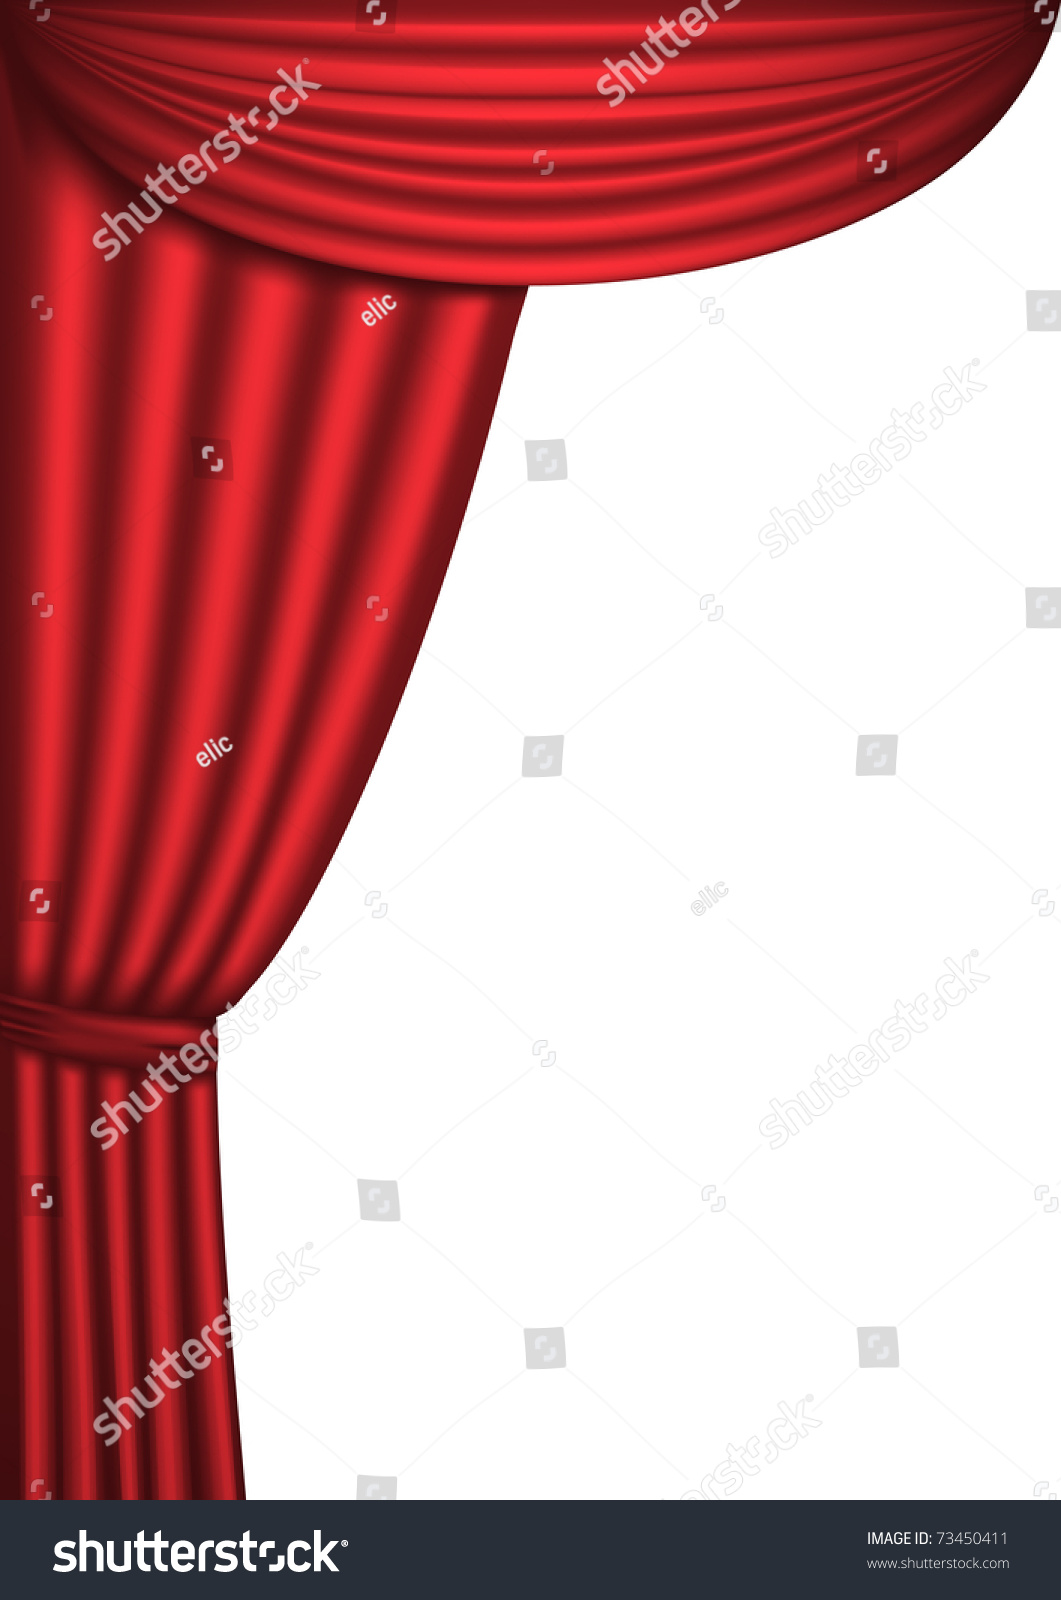 Theatre curtains png - Closed Curtain Clipart Clipartfest Theatre Curtains Png